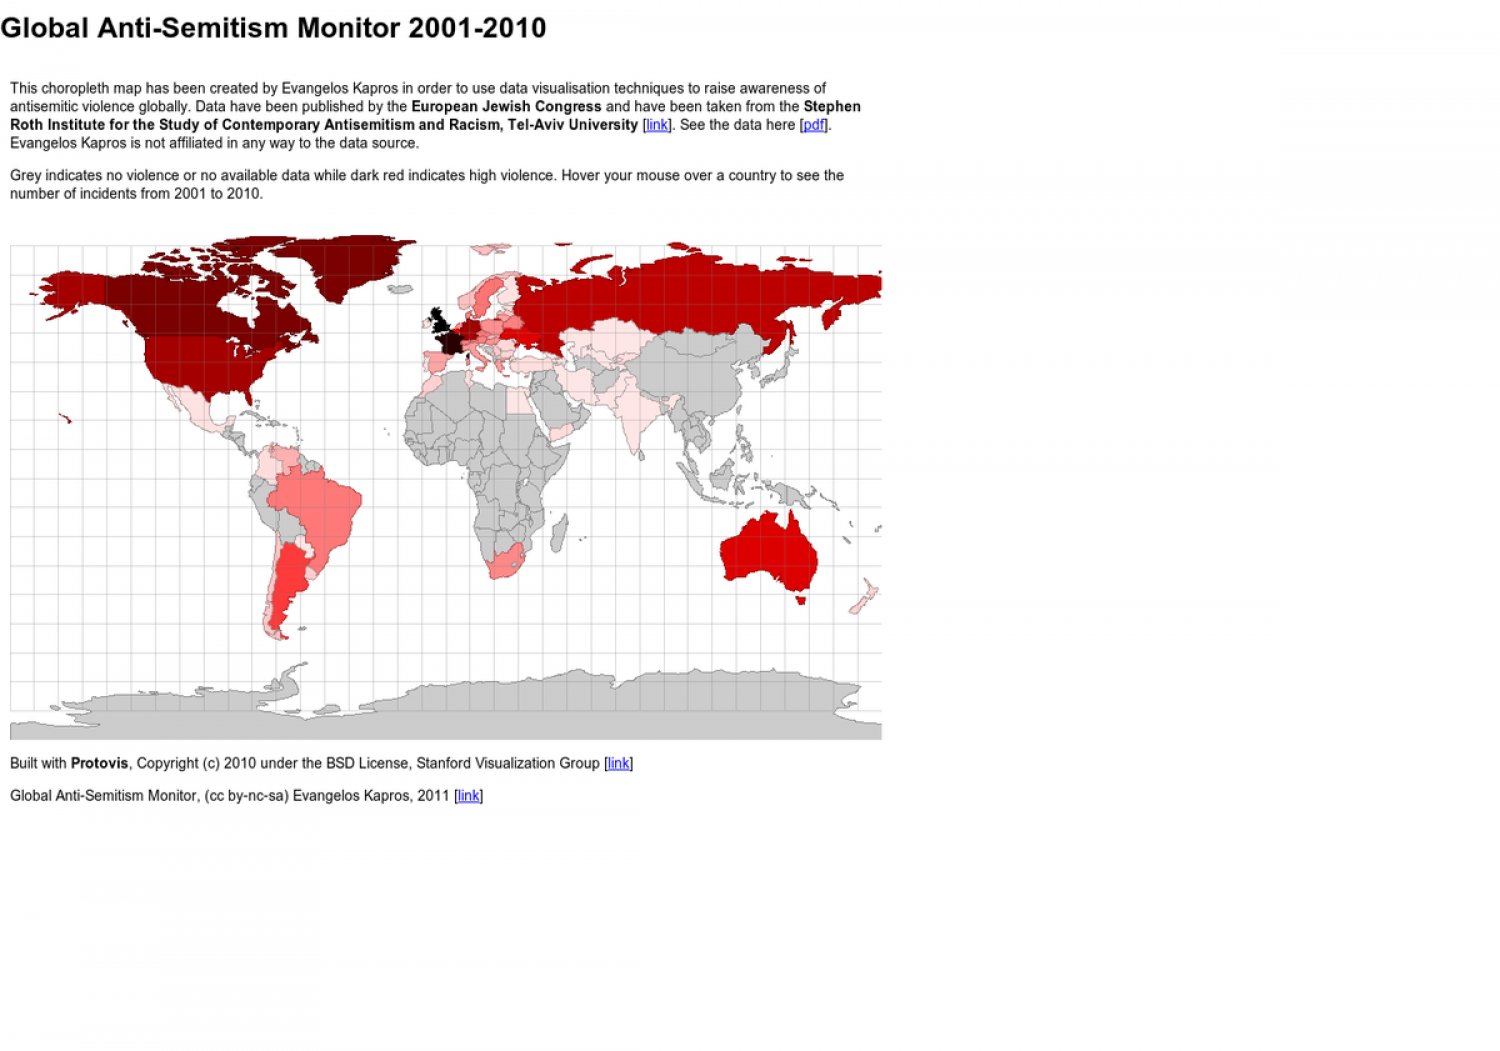 Global Anti-Semitism Monitor Infographic